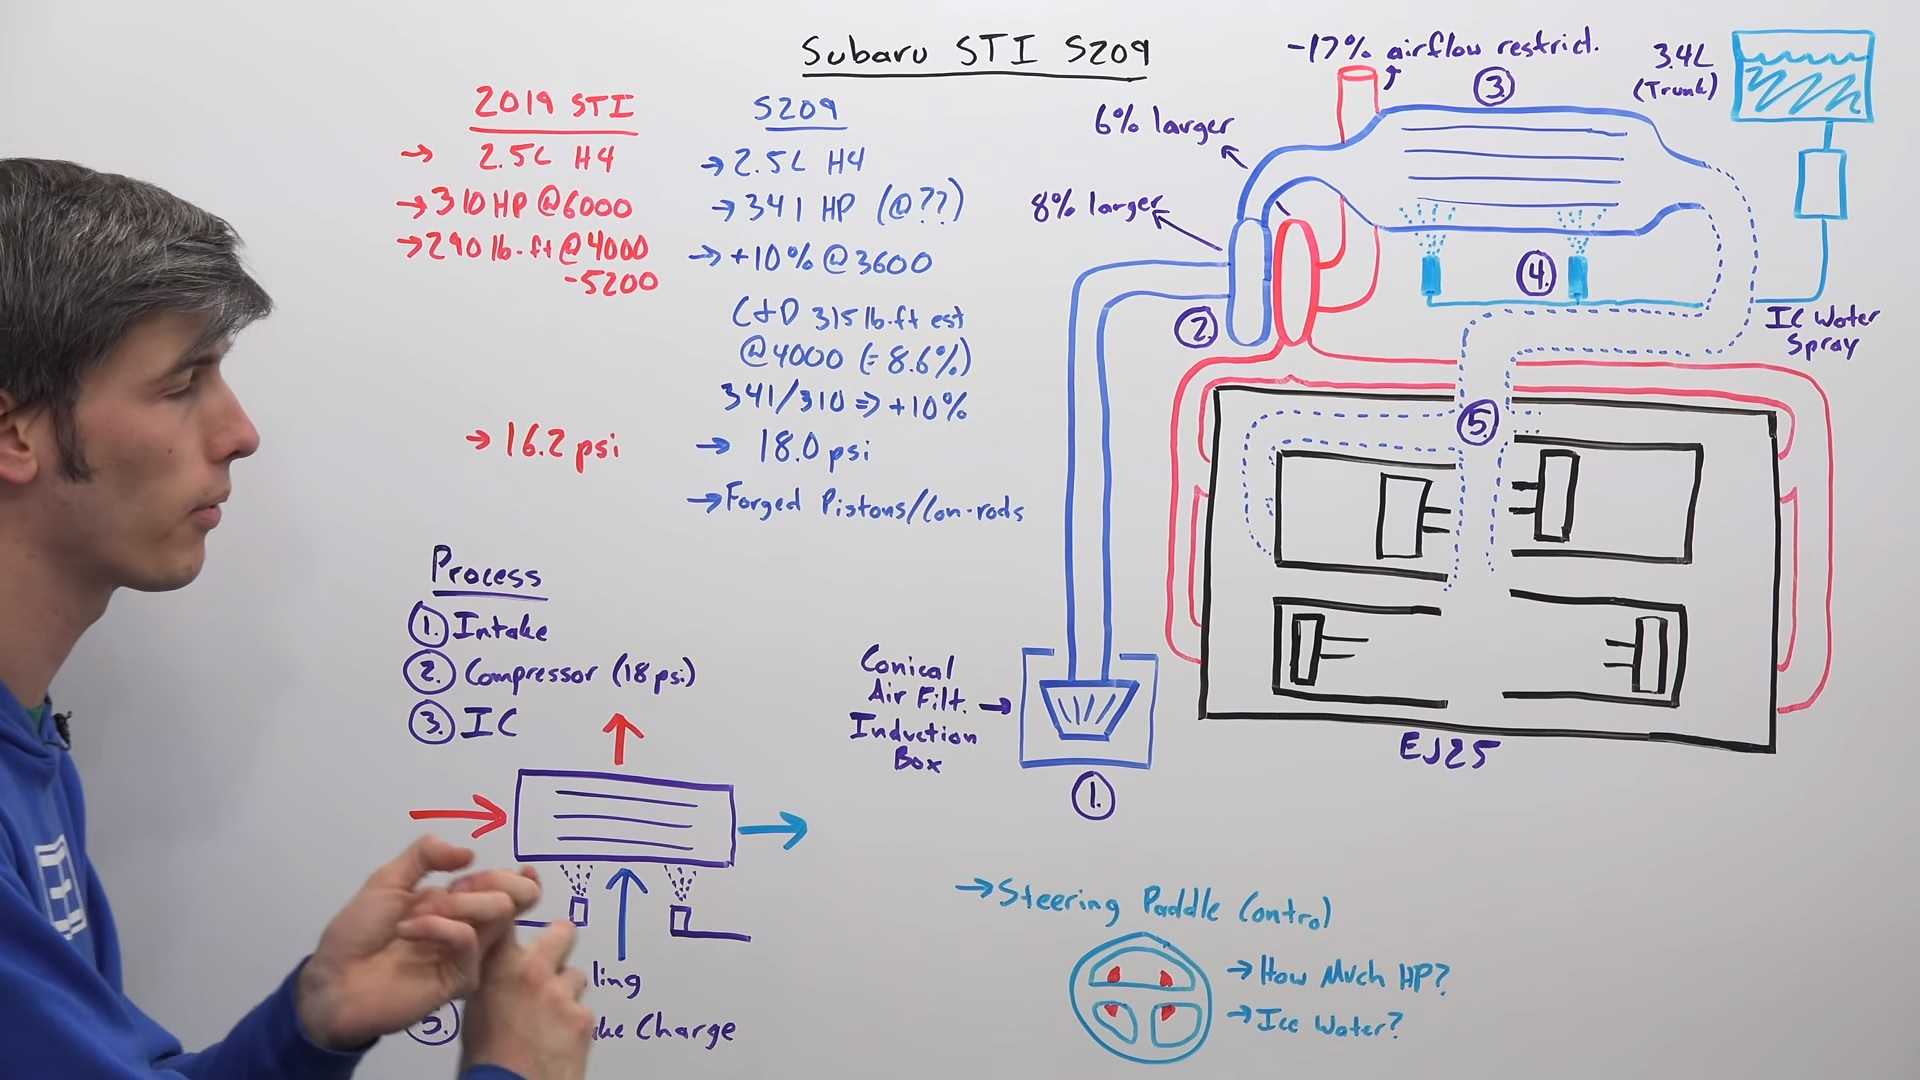 engineering explained: how subaru made the s209 engine that much better